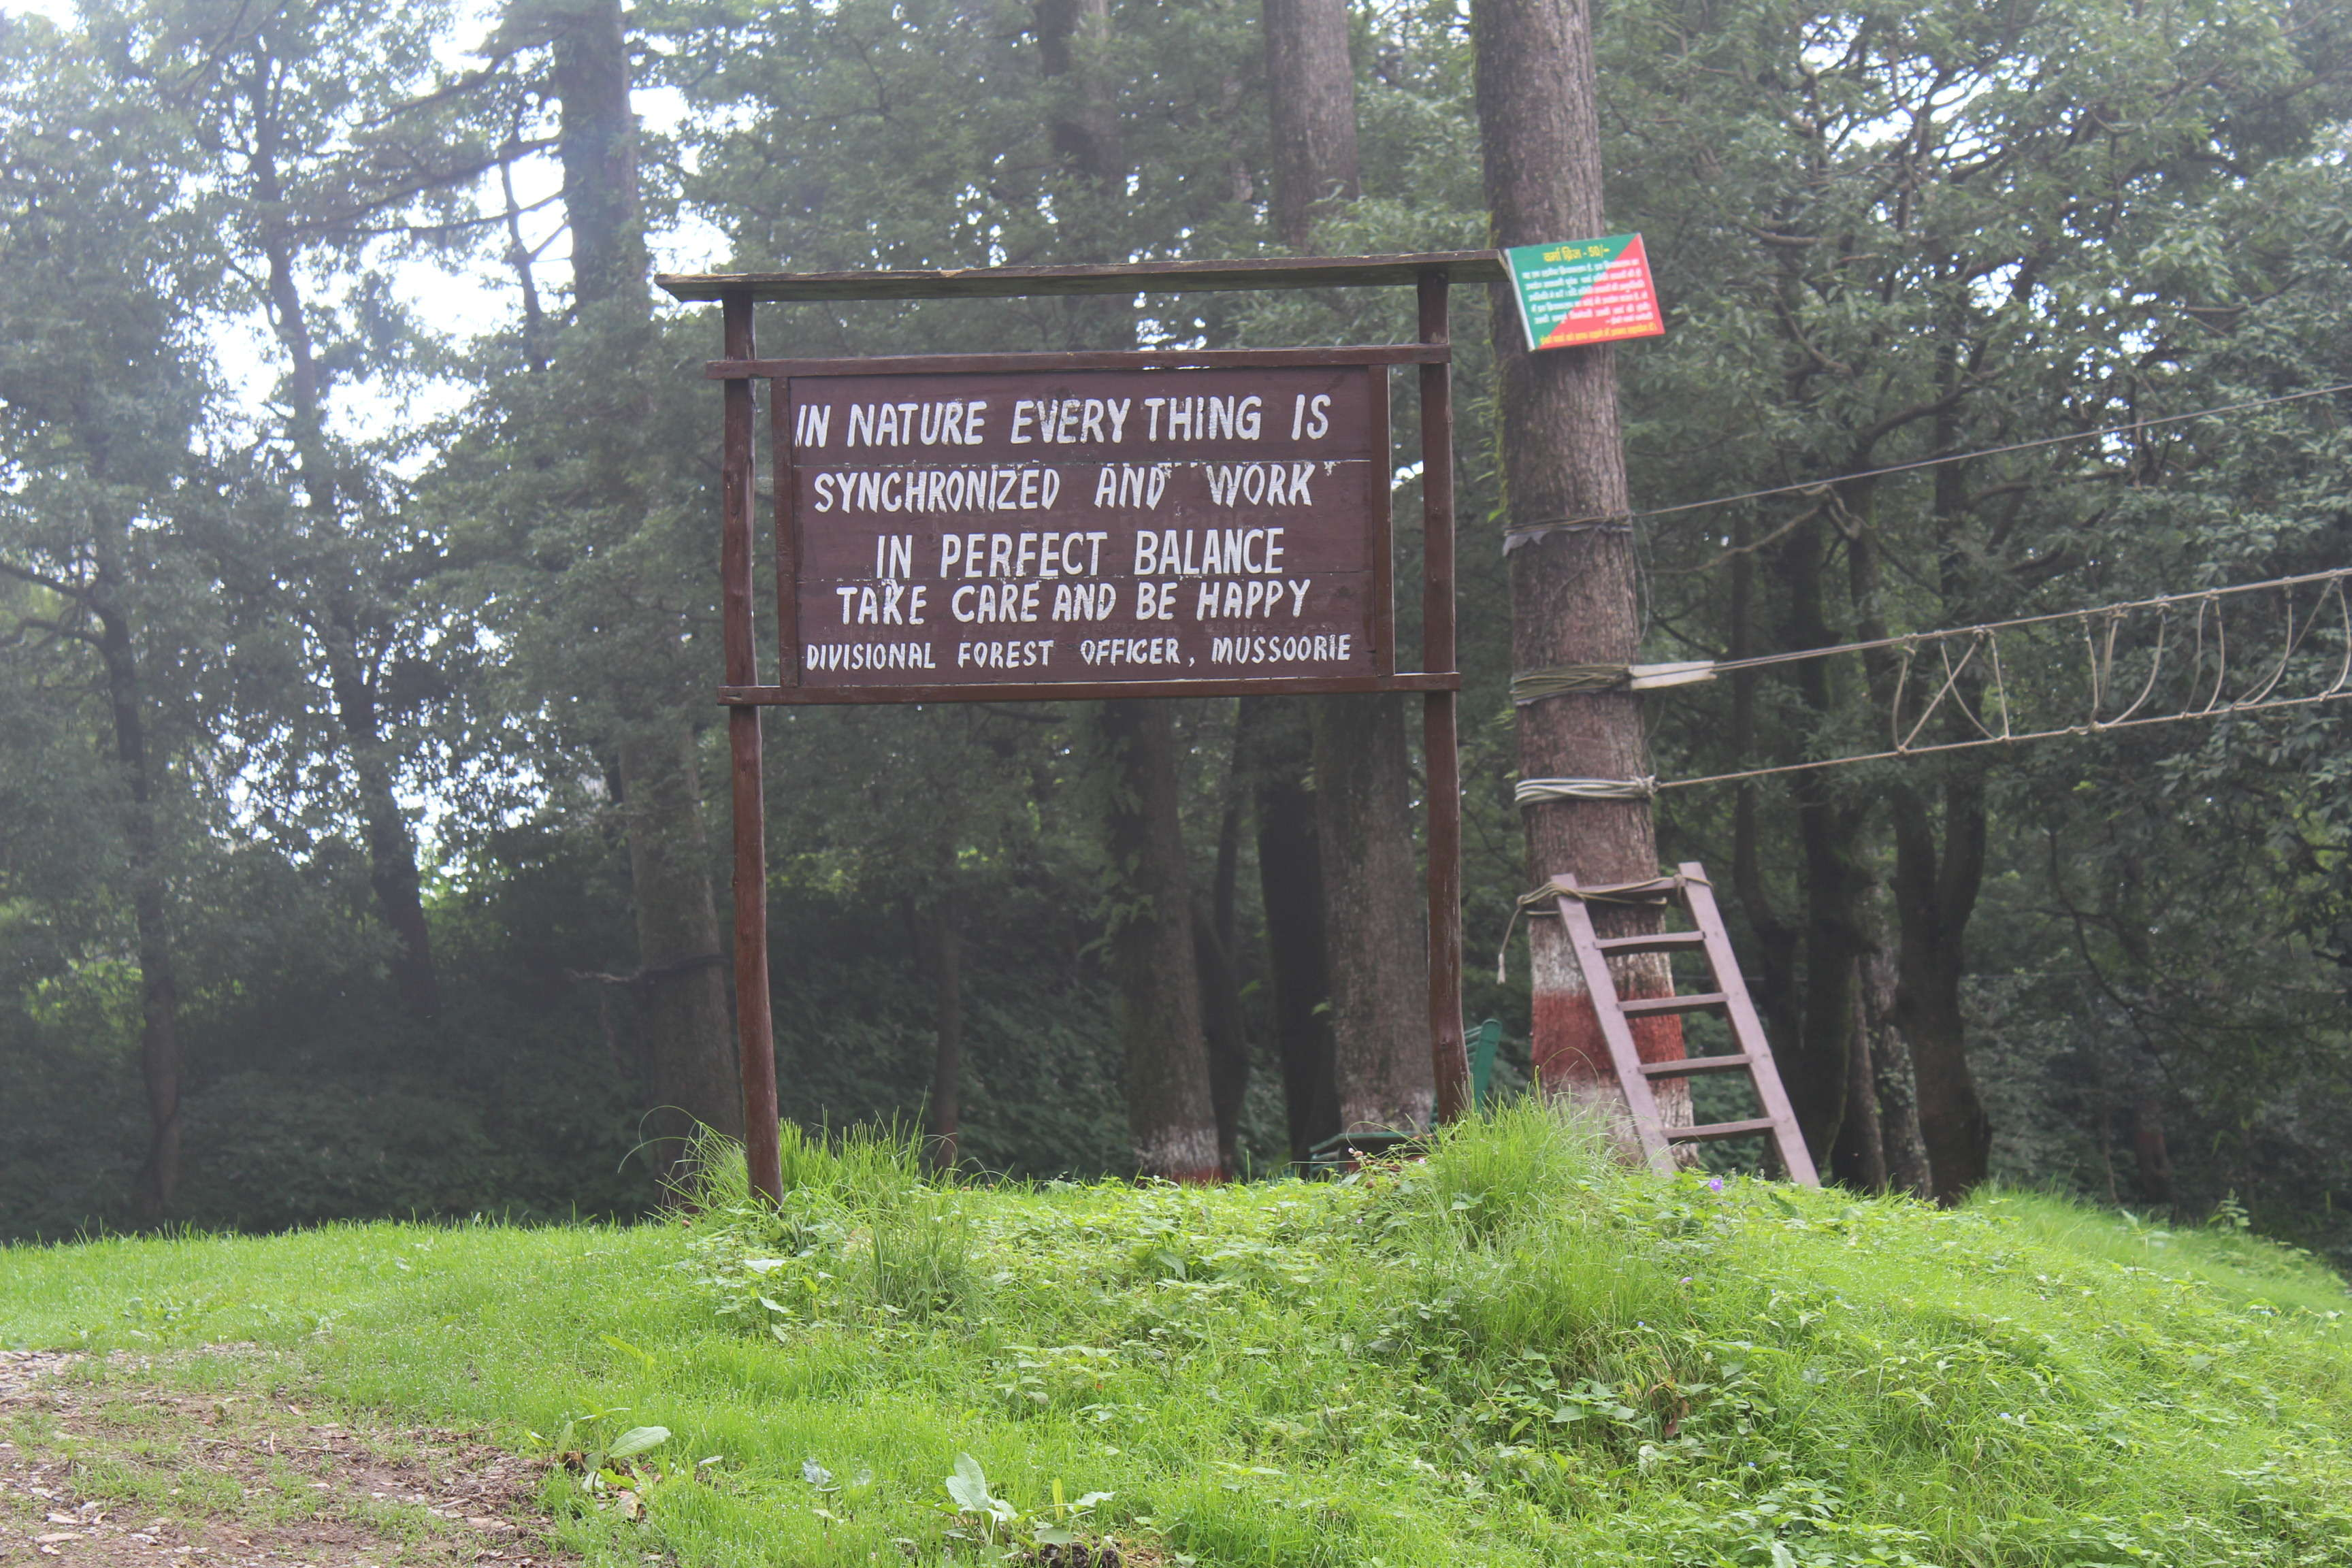 Exciting things to in Dhanaulti, the less explored hill station of Uttarakhand